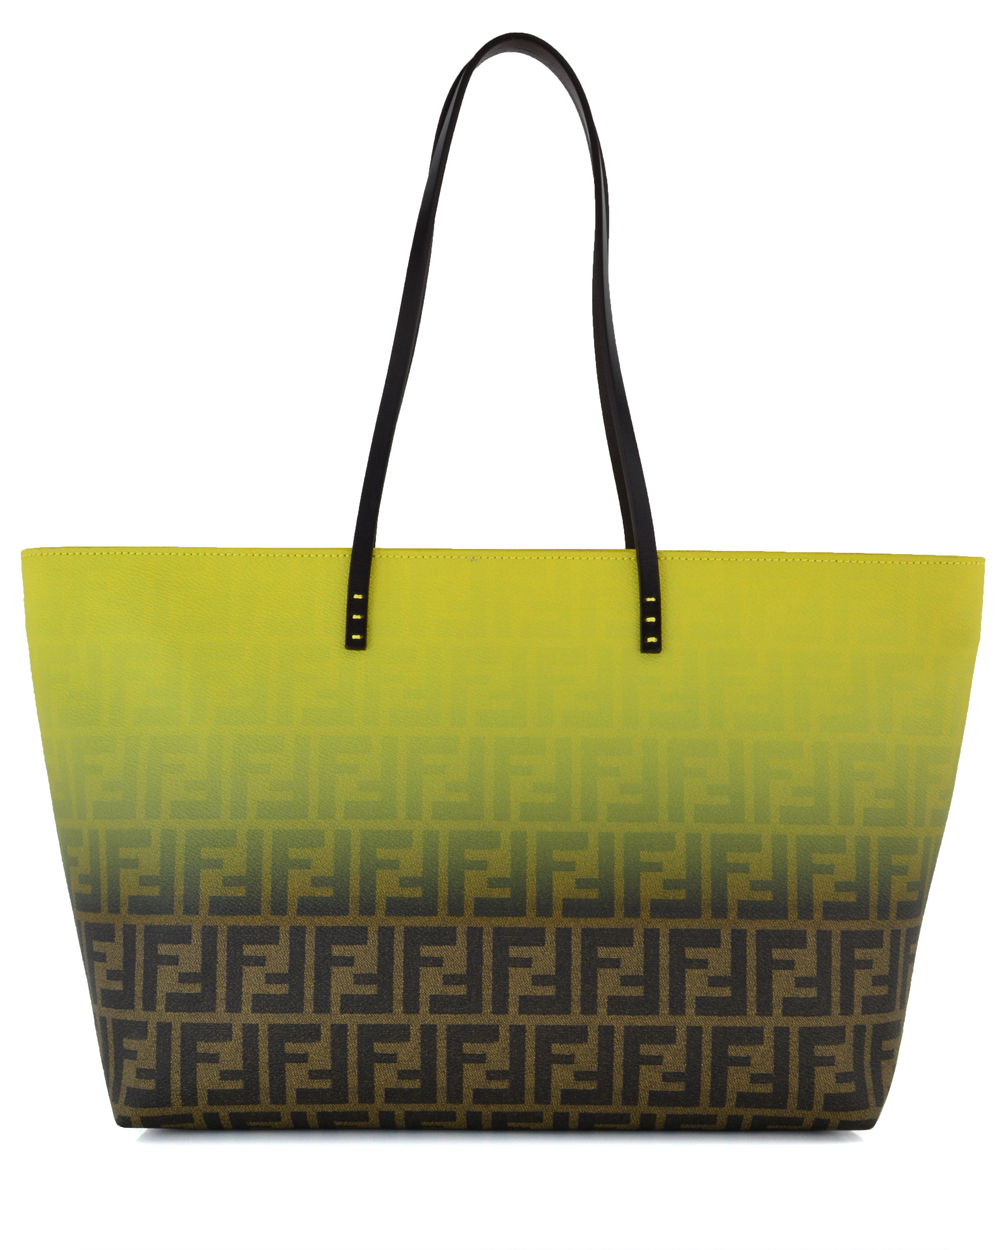 482ab2c02957 ... bag cc60b 7e3a9 france lyst fendi yellow ombre zucca tote in yellow  c6750 3b6c1 ...